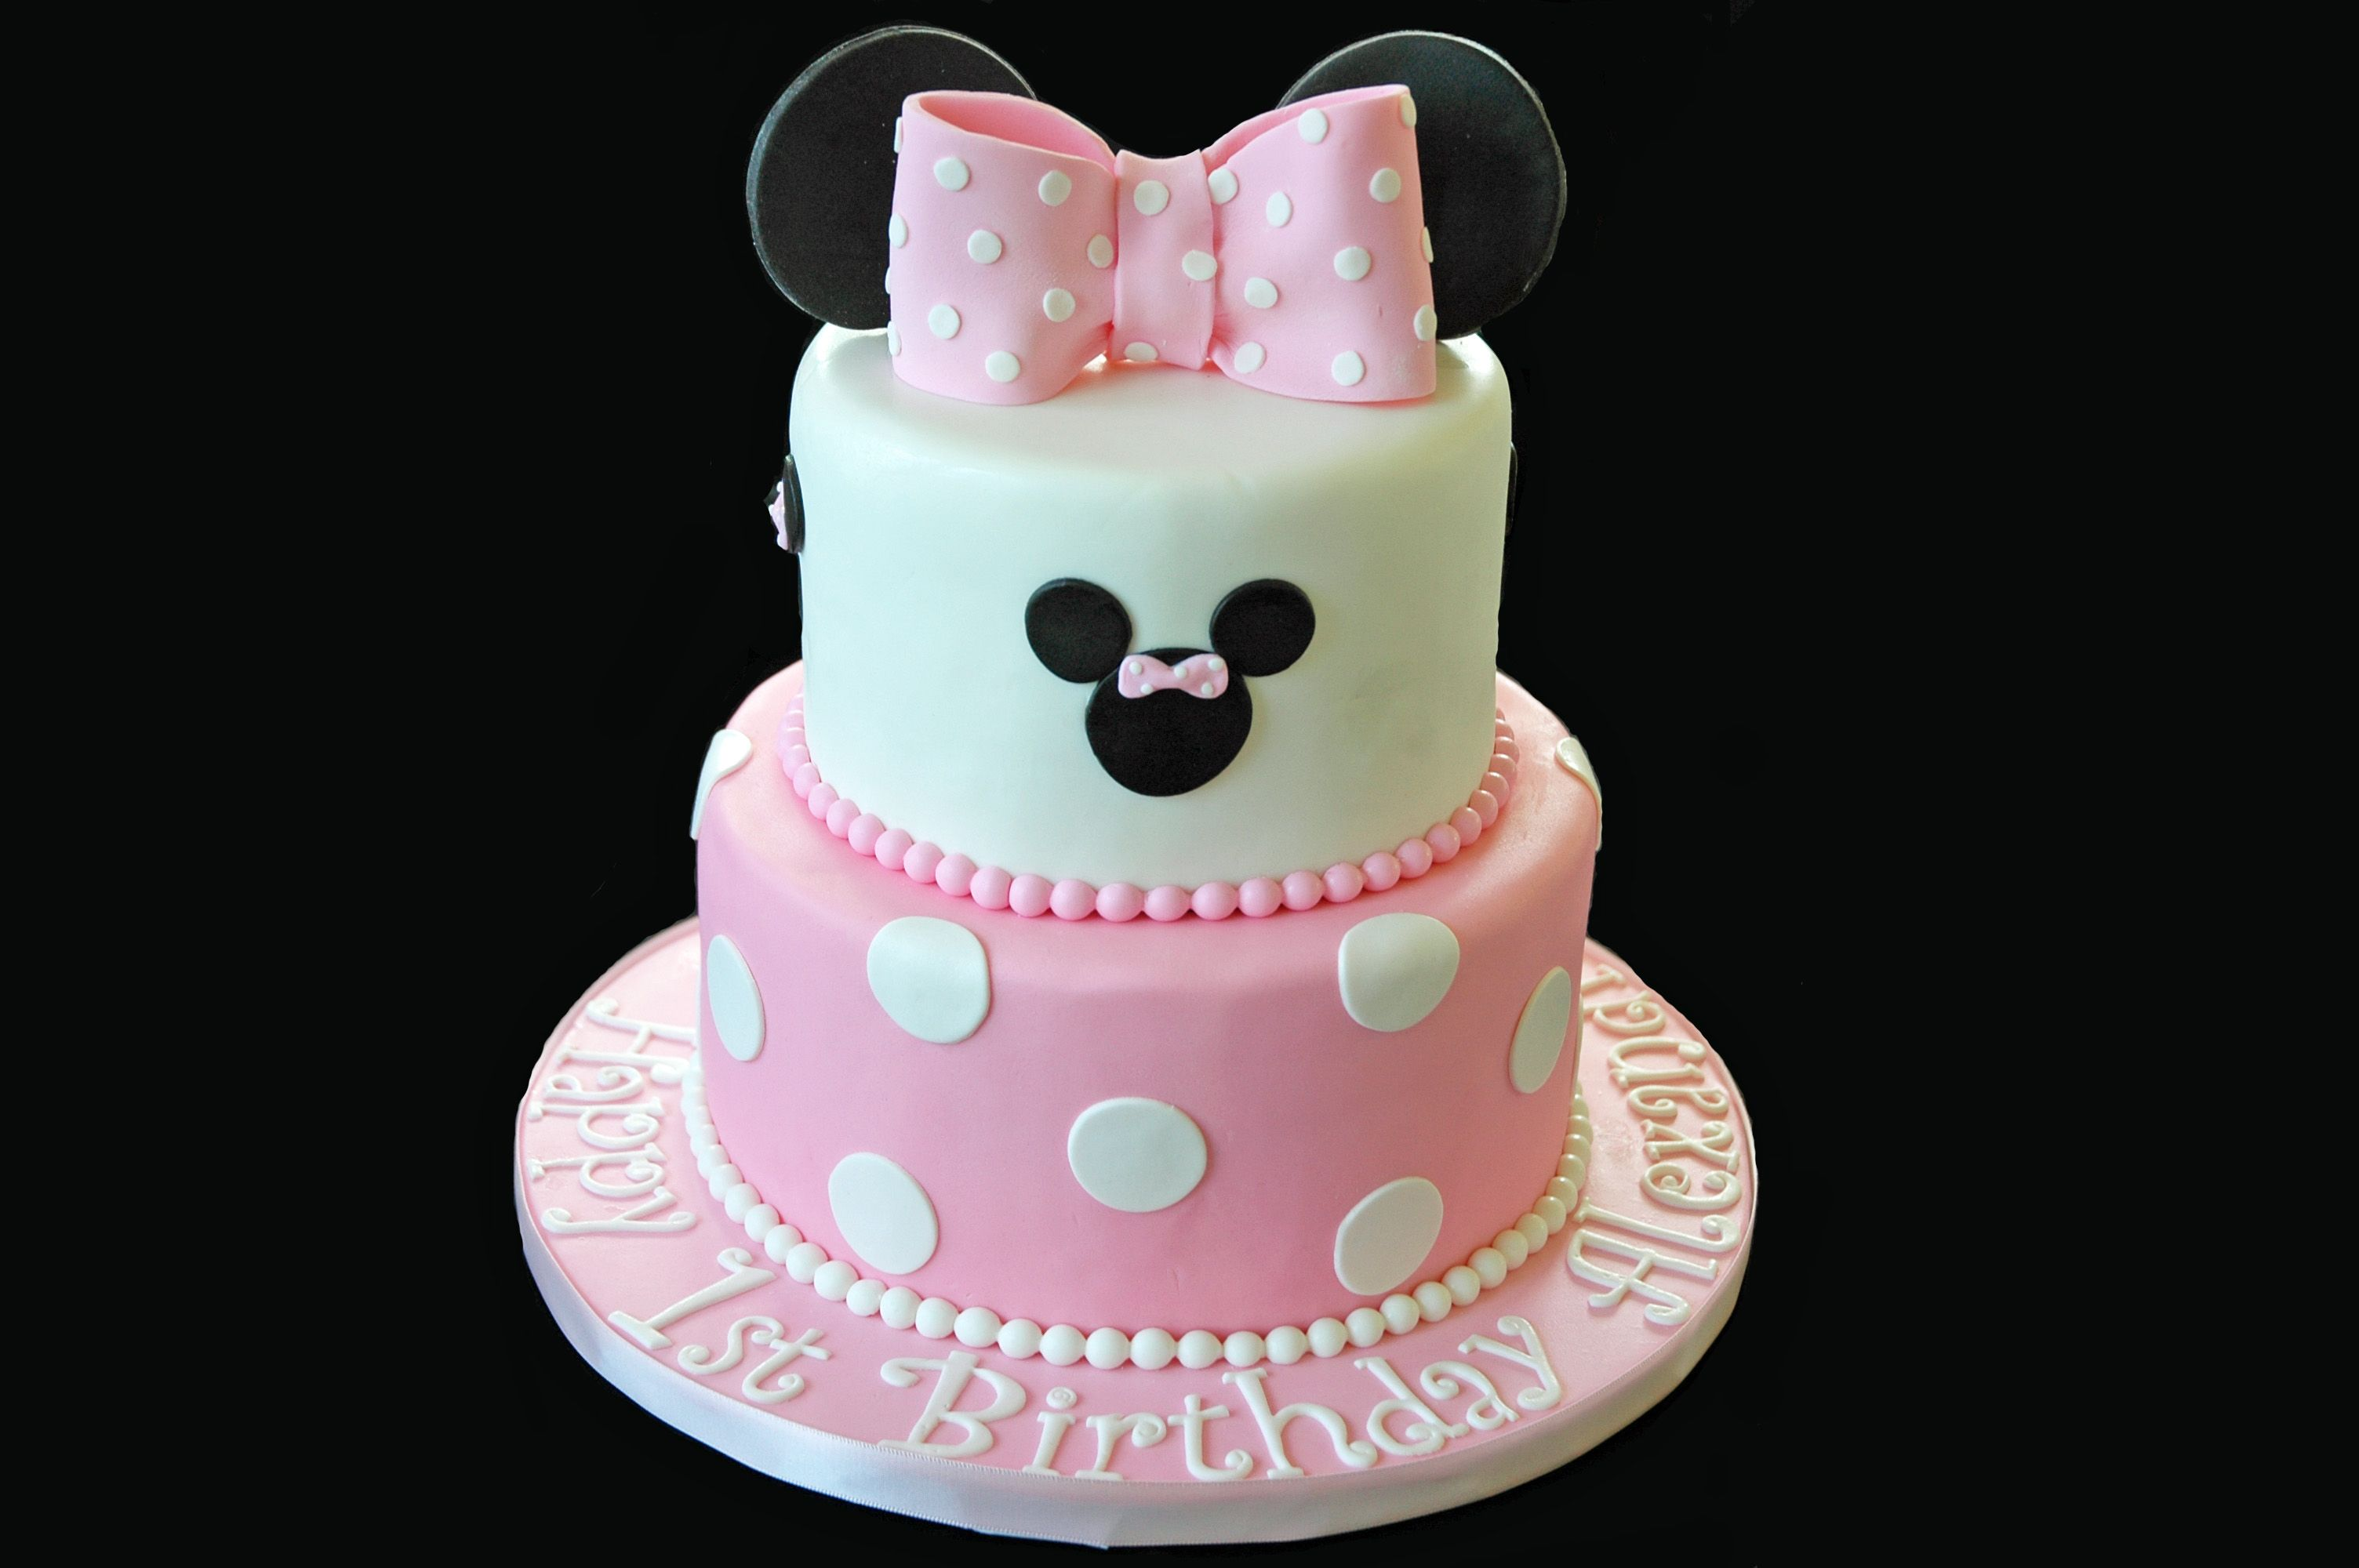 Minnie Mouse Cake Www1gateaucom Gâteau Distinctive Cakes